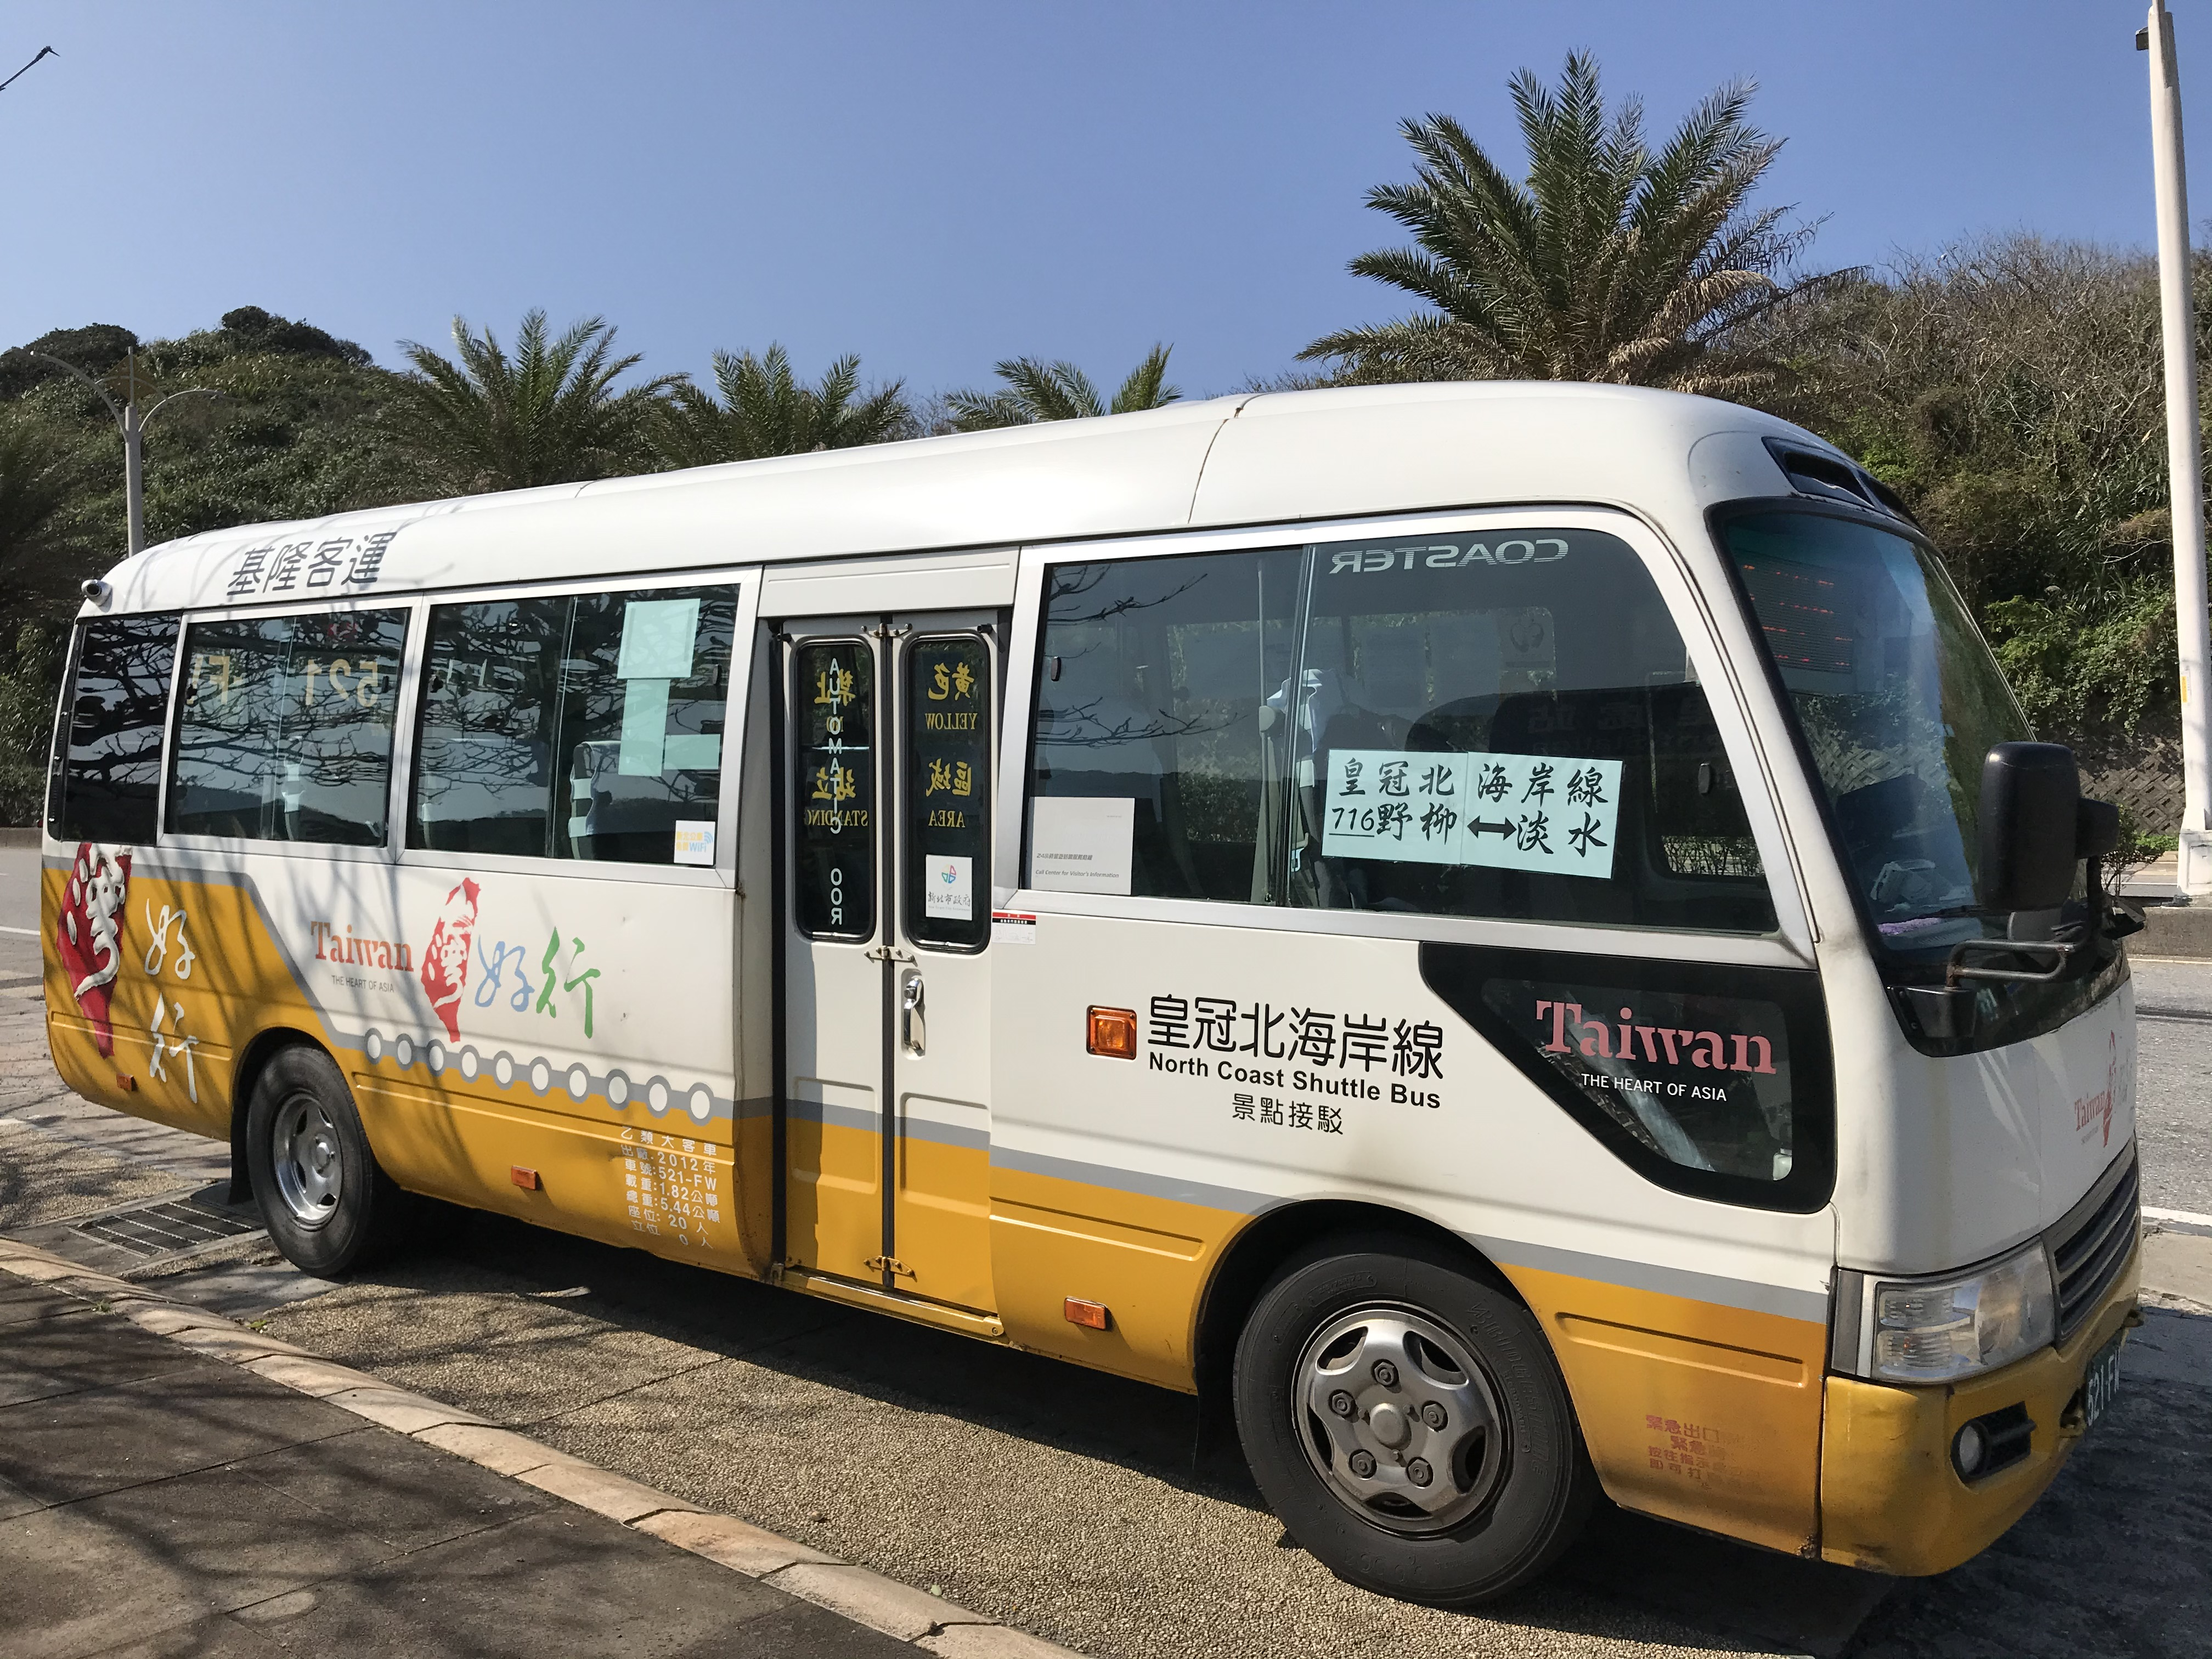 Taiwan Tourist Shuttle - Crown North Coast Line